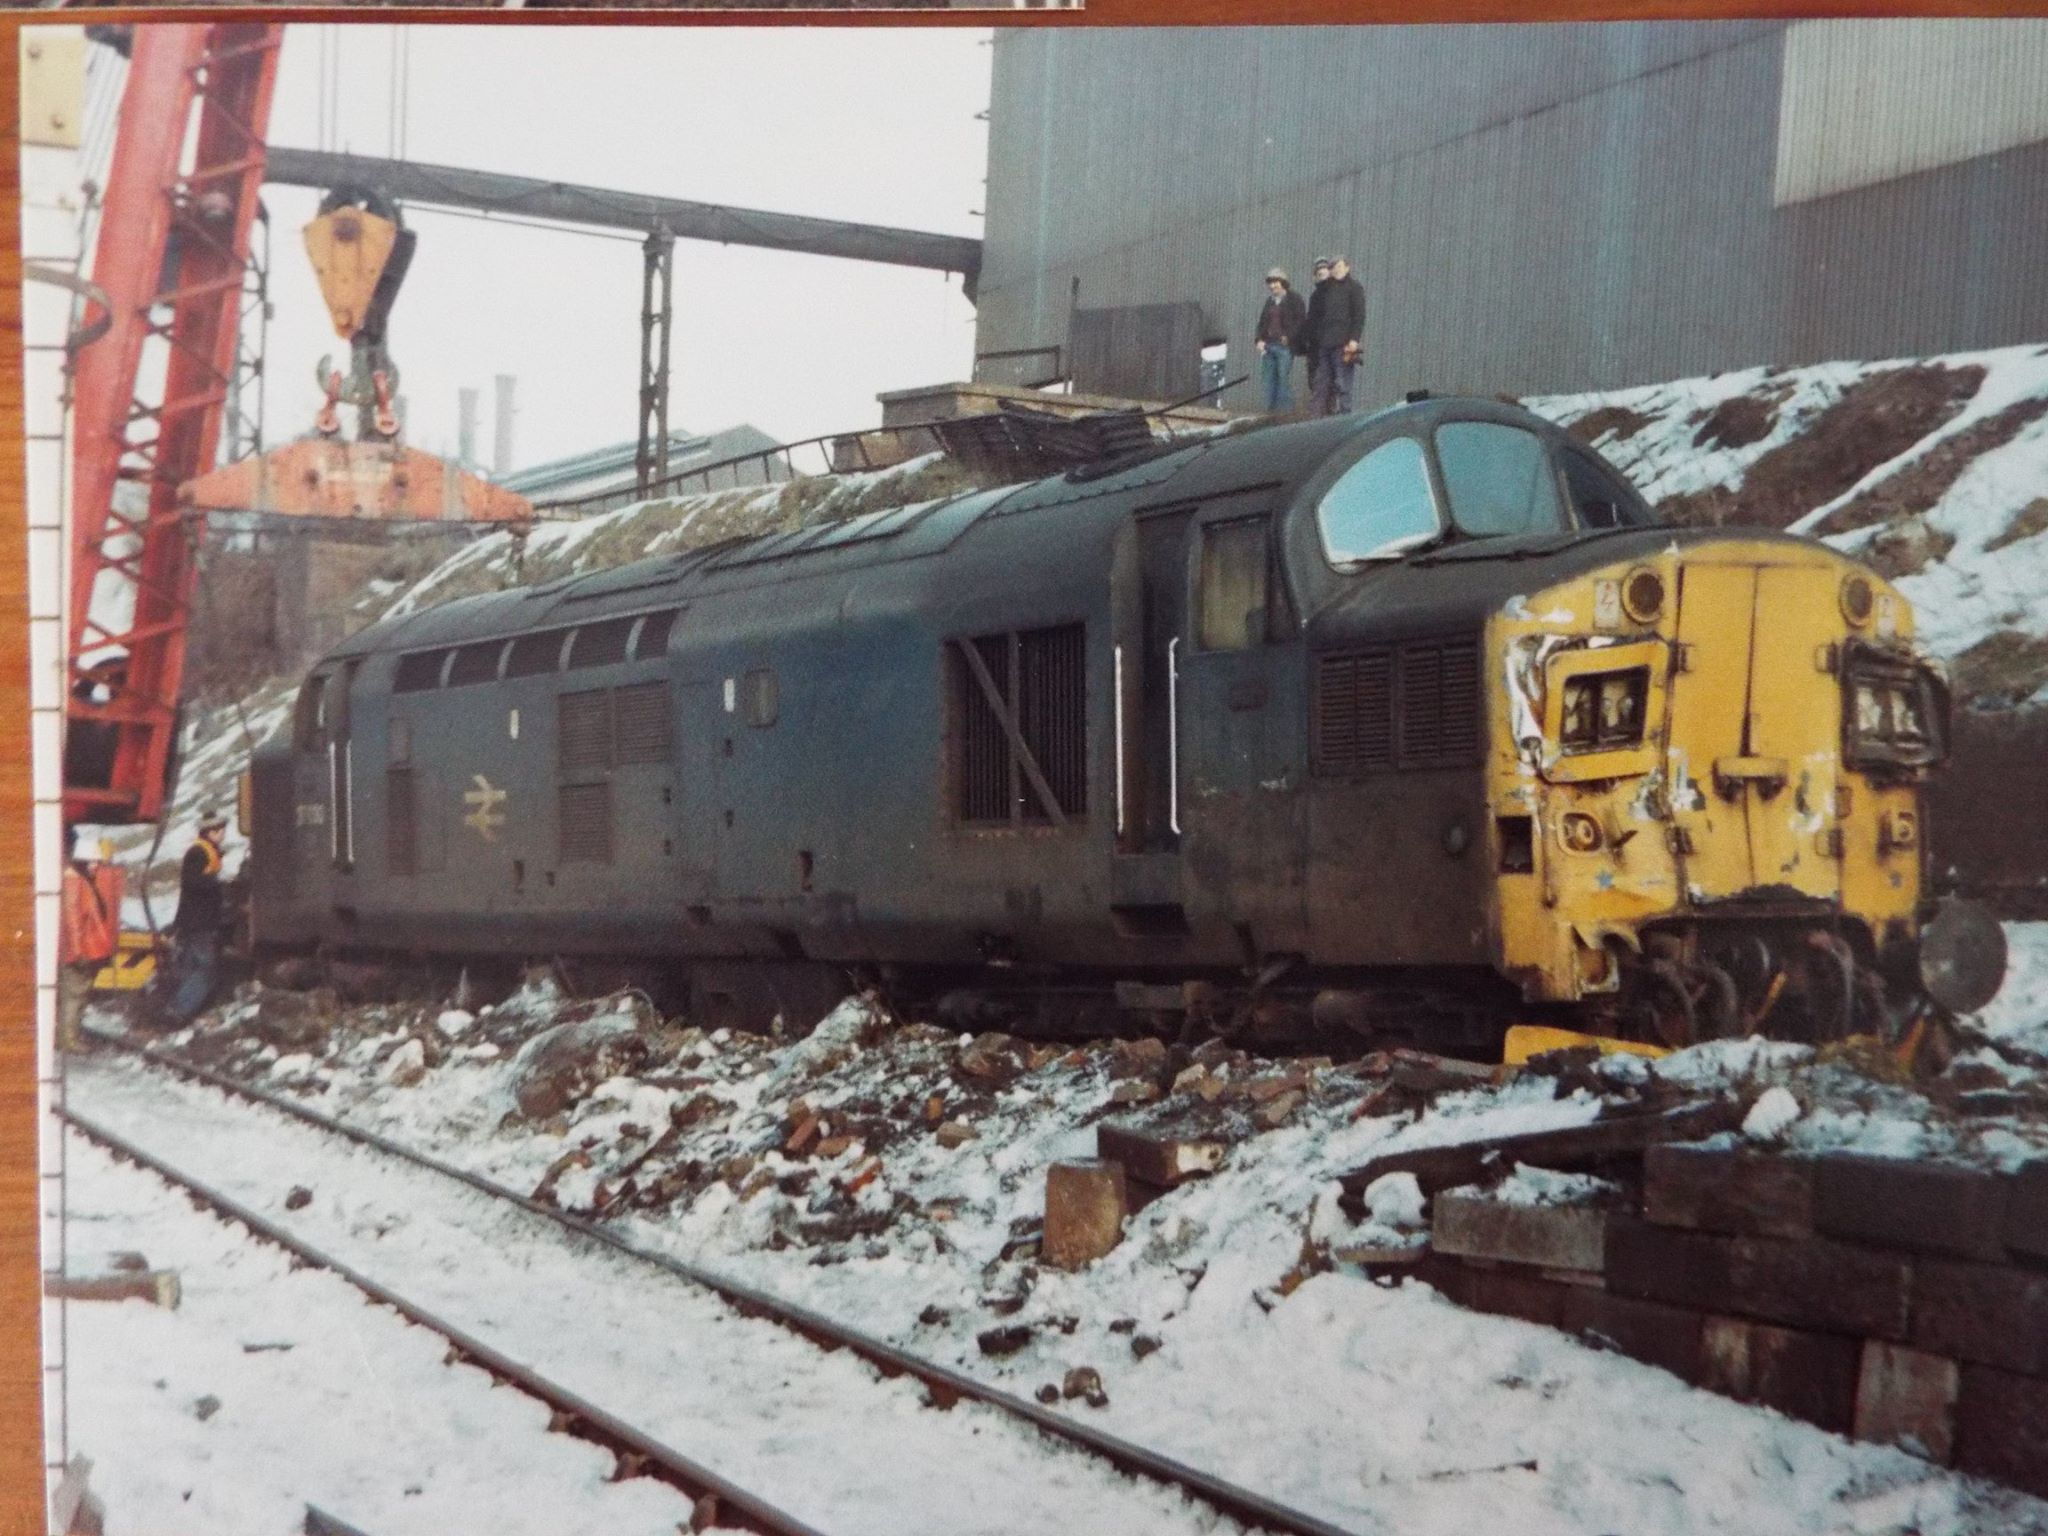 37030 at the steelworks showing the aftermath of a collision with the buffers on 8 February 1979. Photo copyright John Atkinson